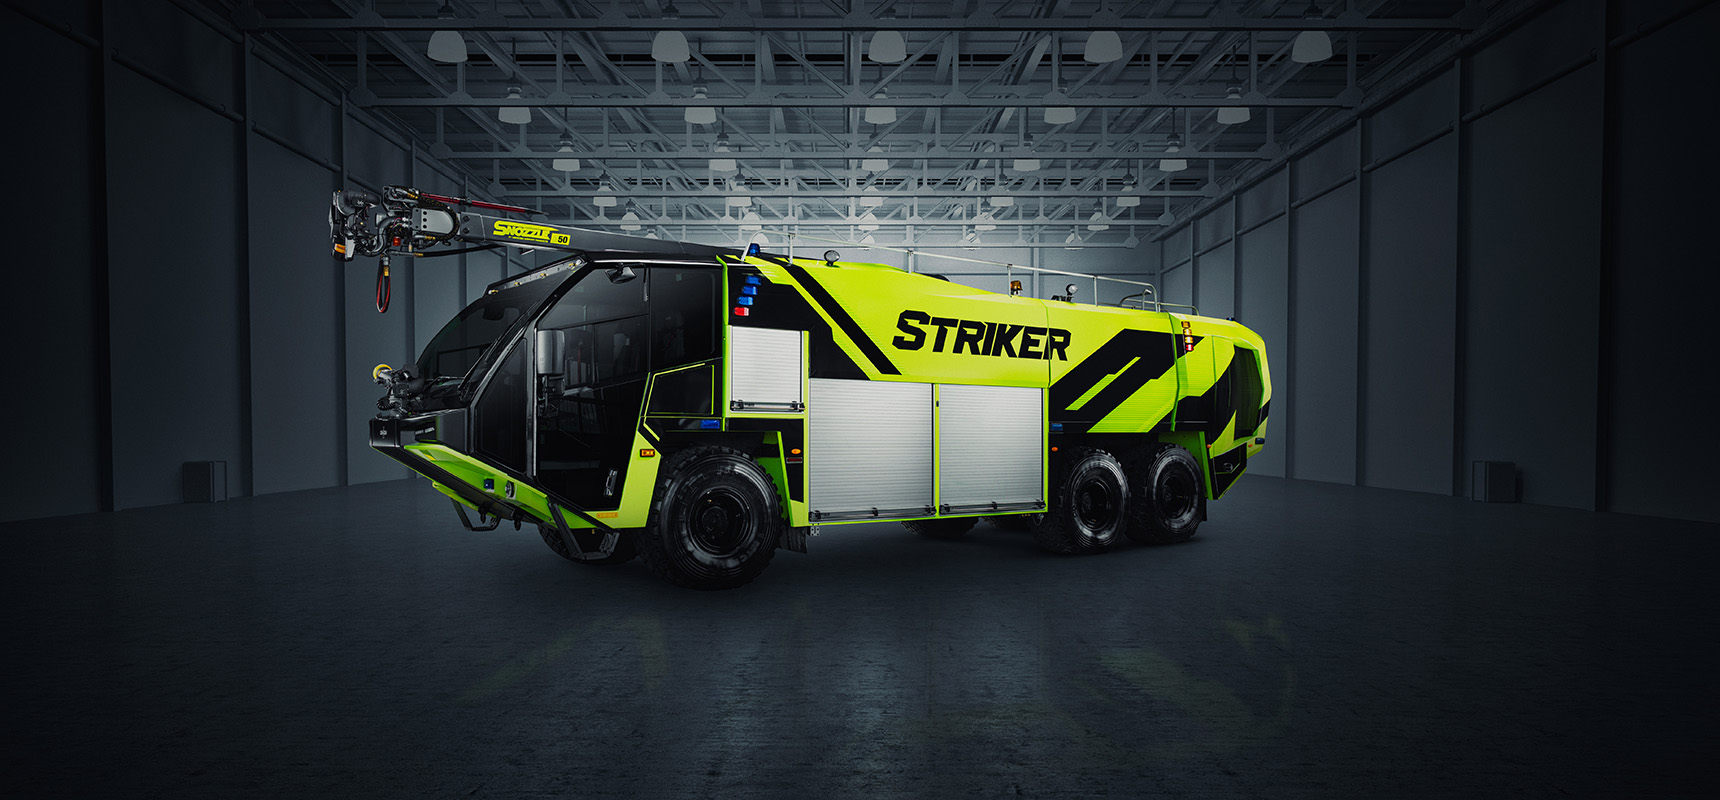 Oshkosh Airport Products unveiled the new Striker ARFF vehicle with optimized cockpit and best-in-class legacy features